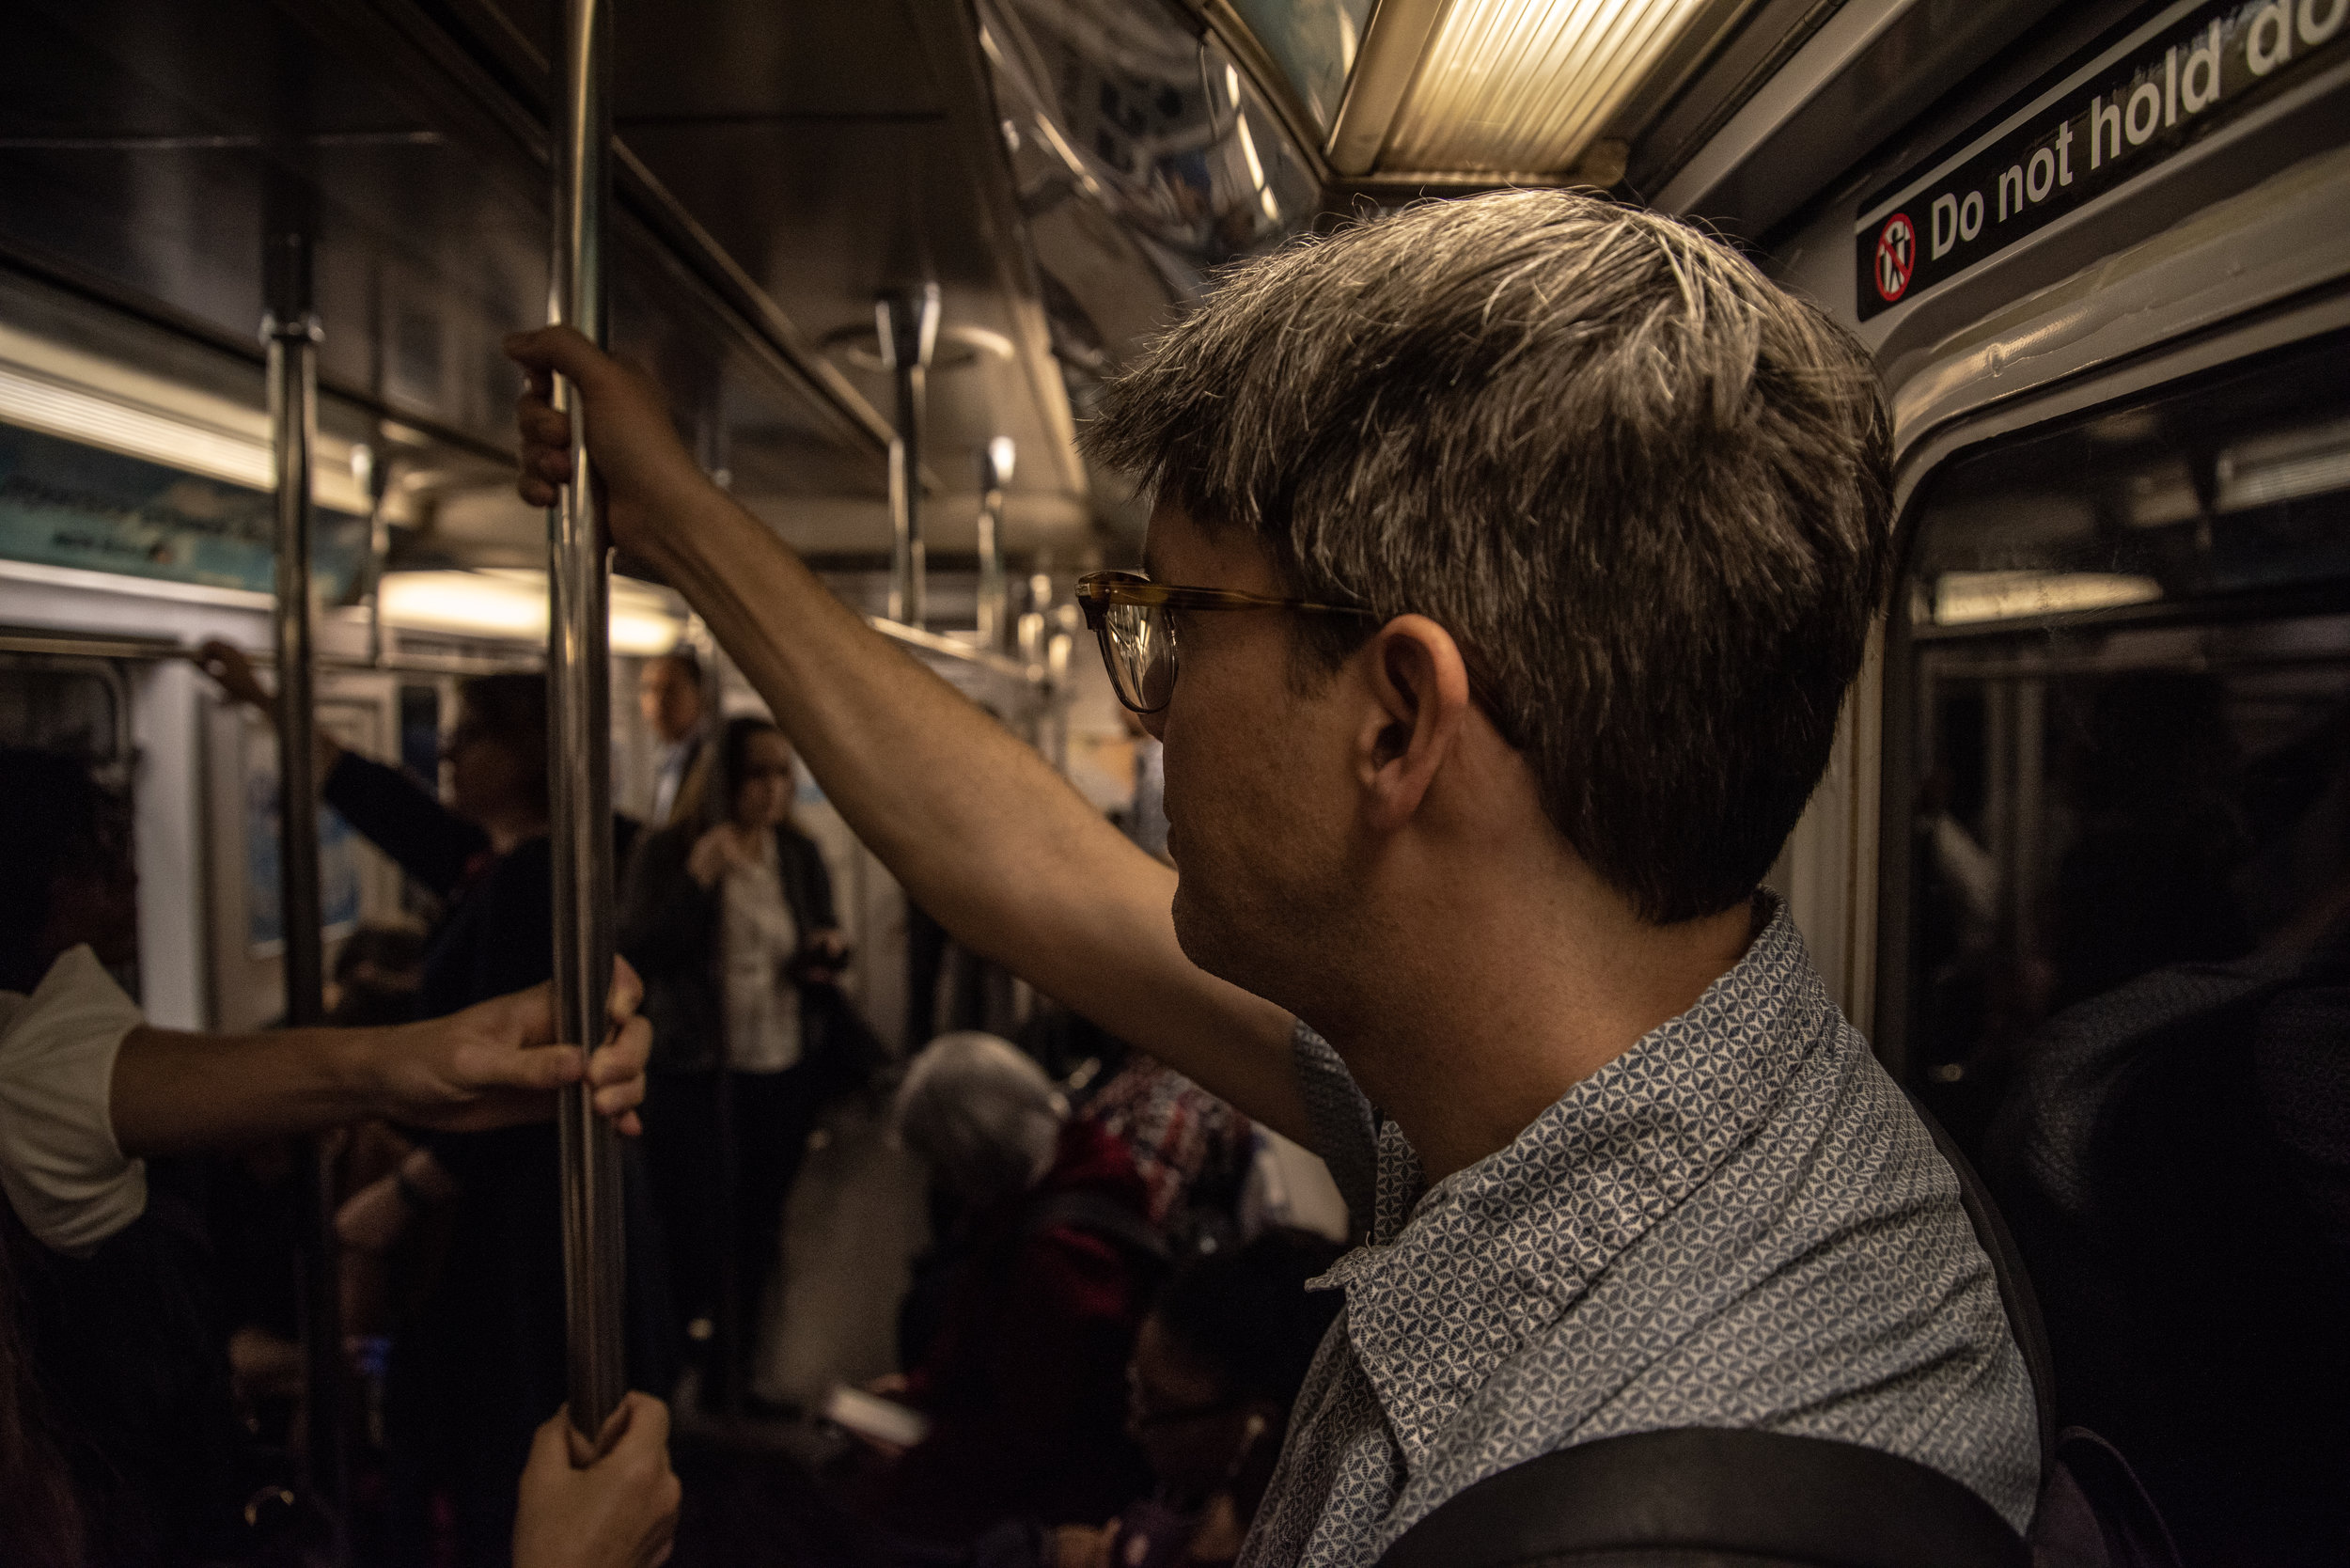 Tom joins the morning rush on the New York City subway